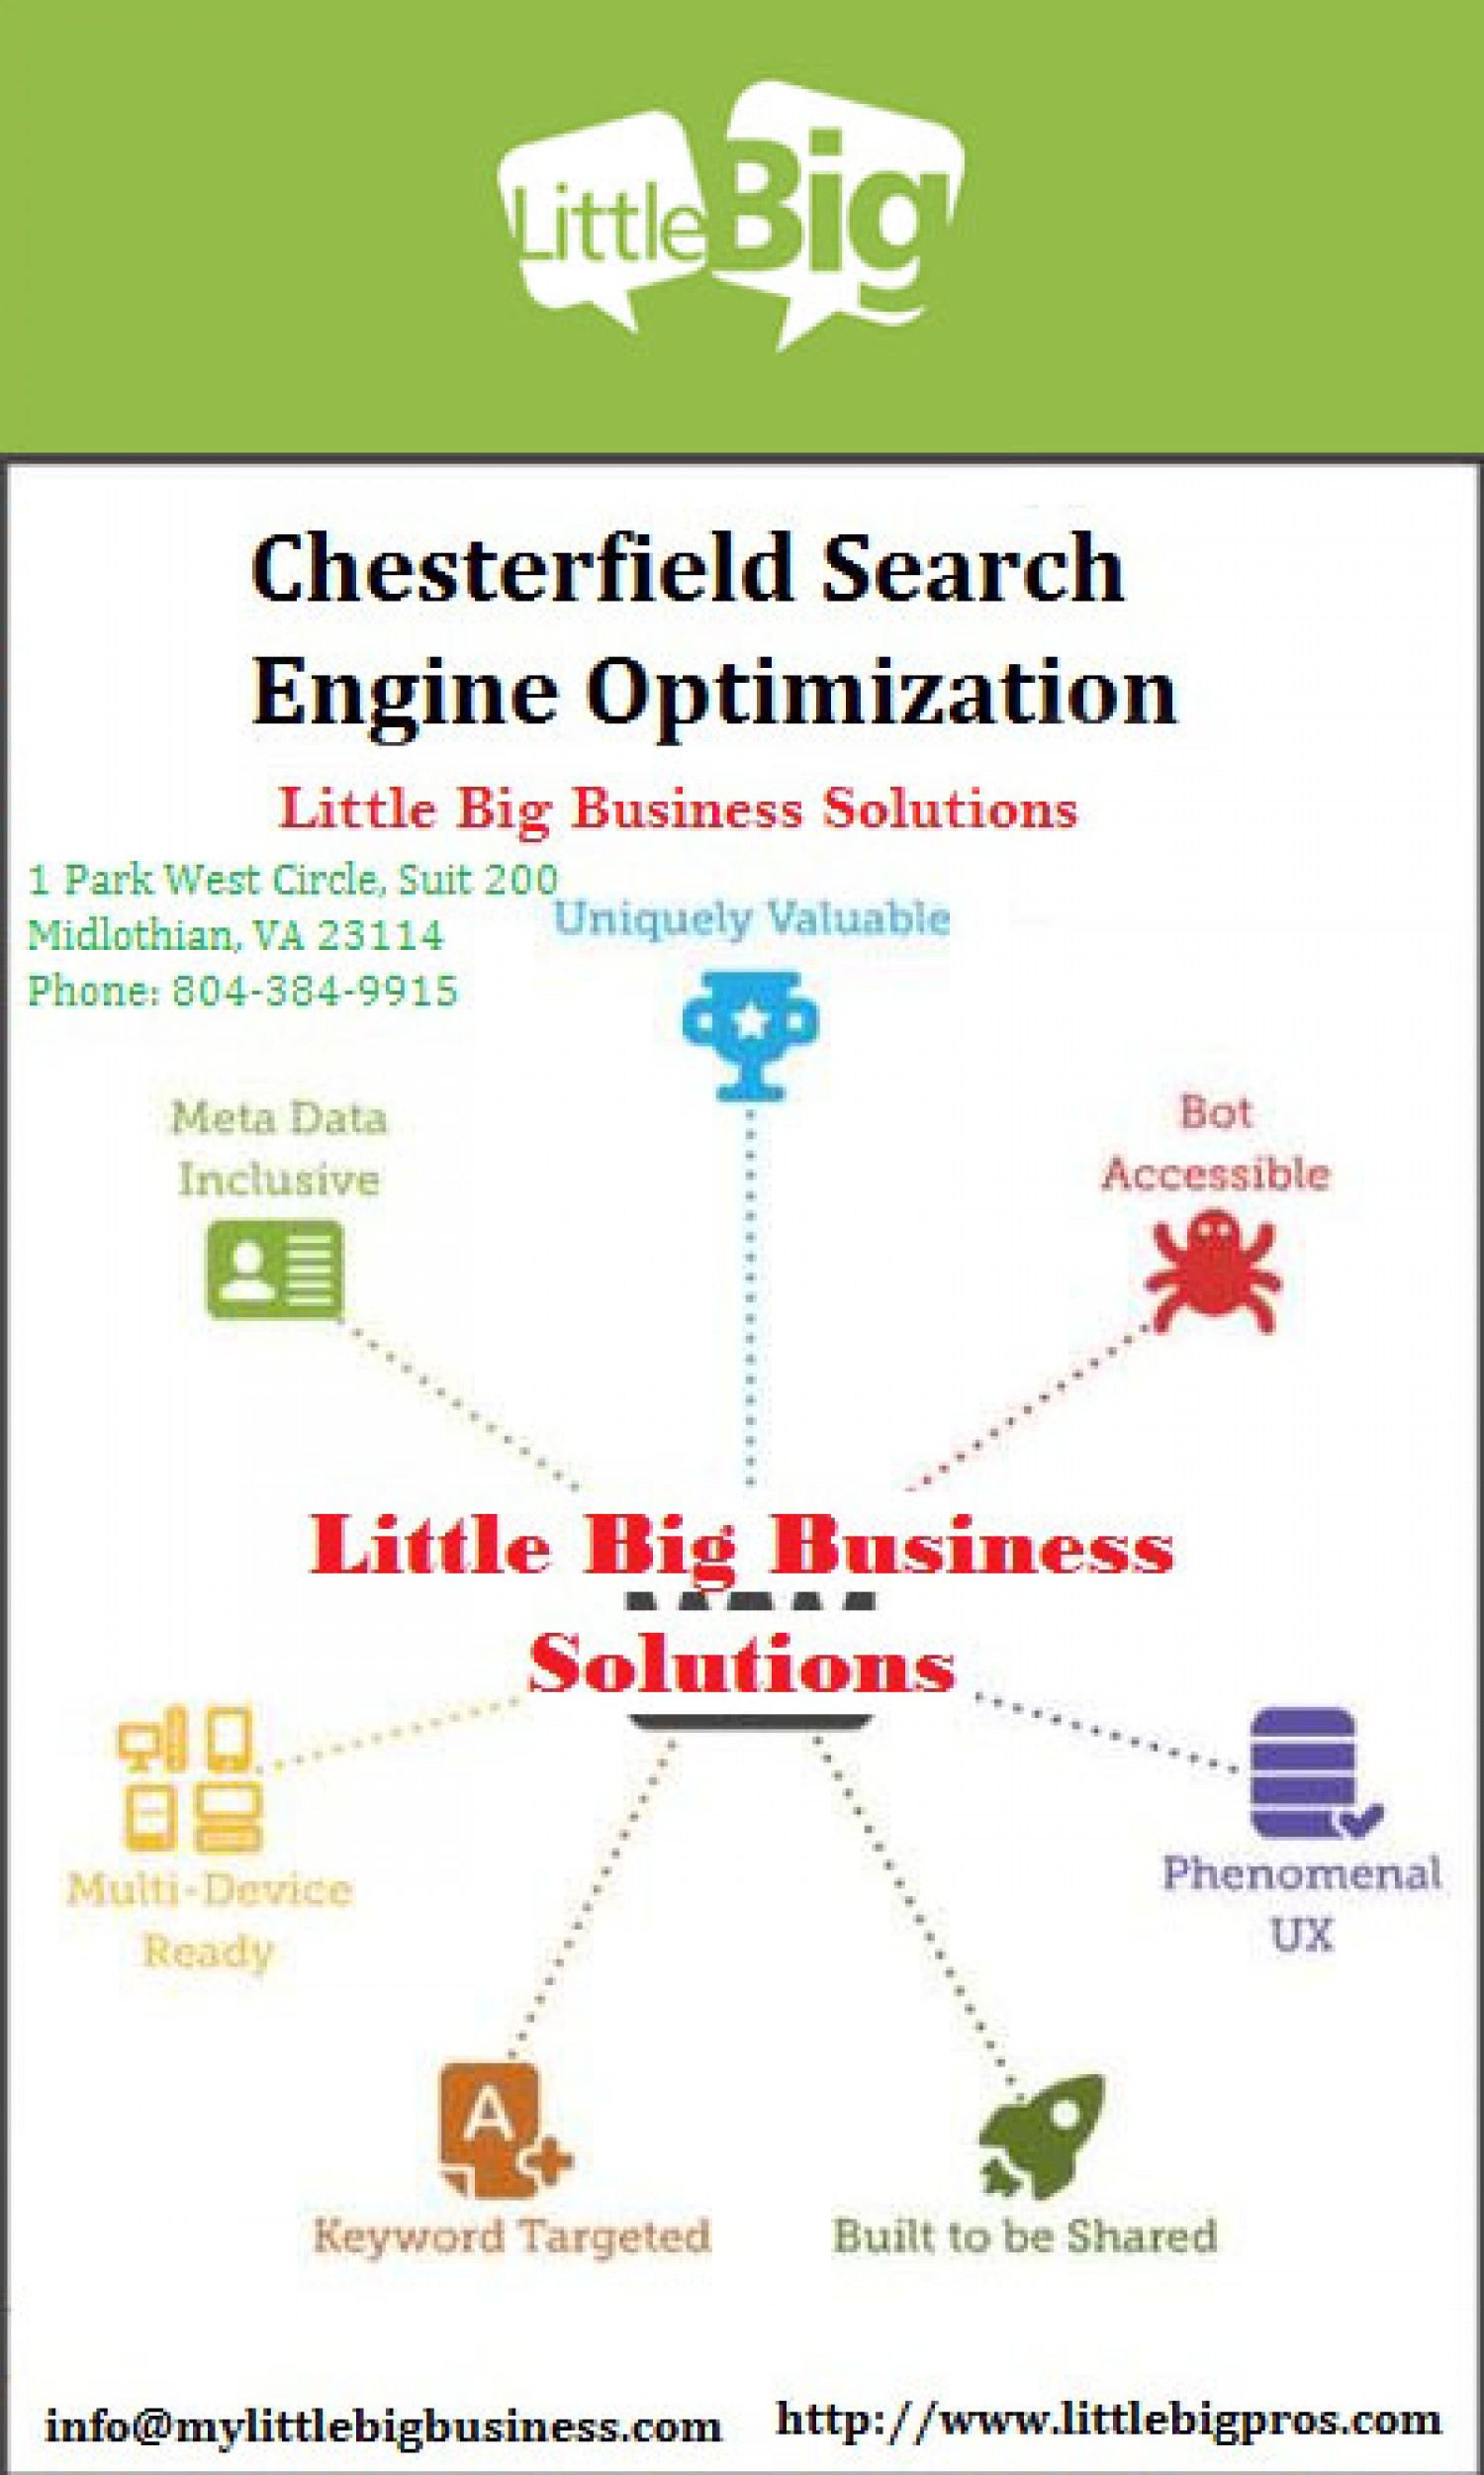 Chesterfield Search Engine Optimization Infographic